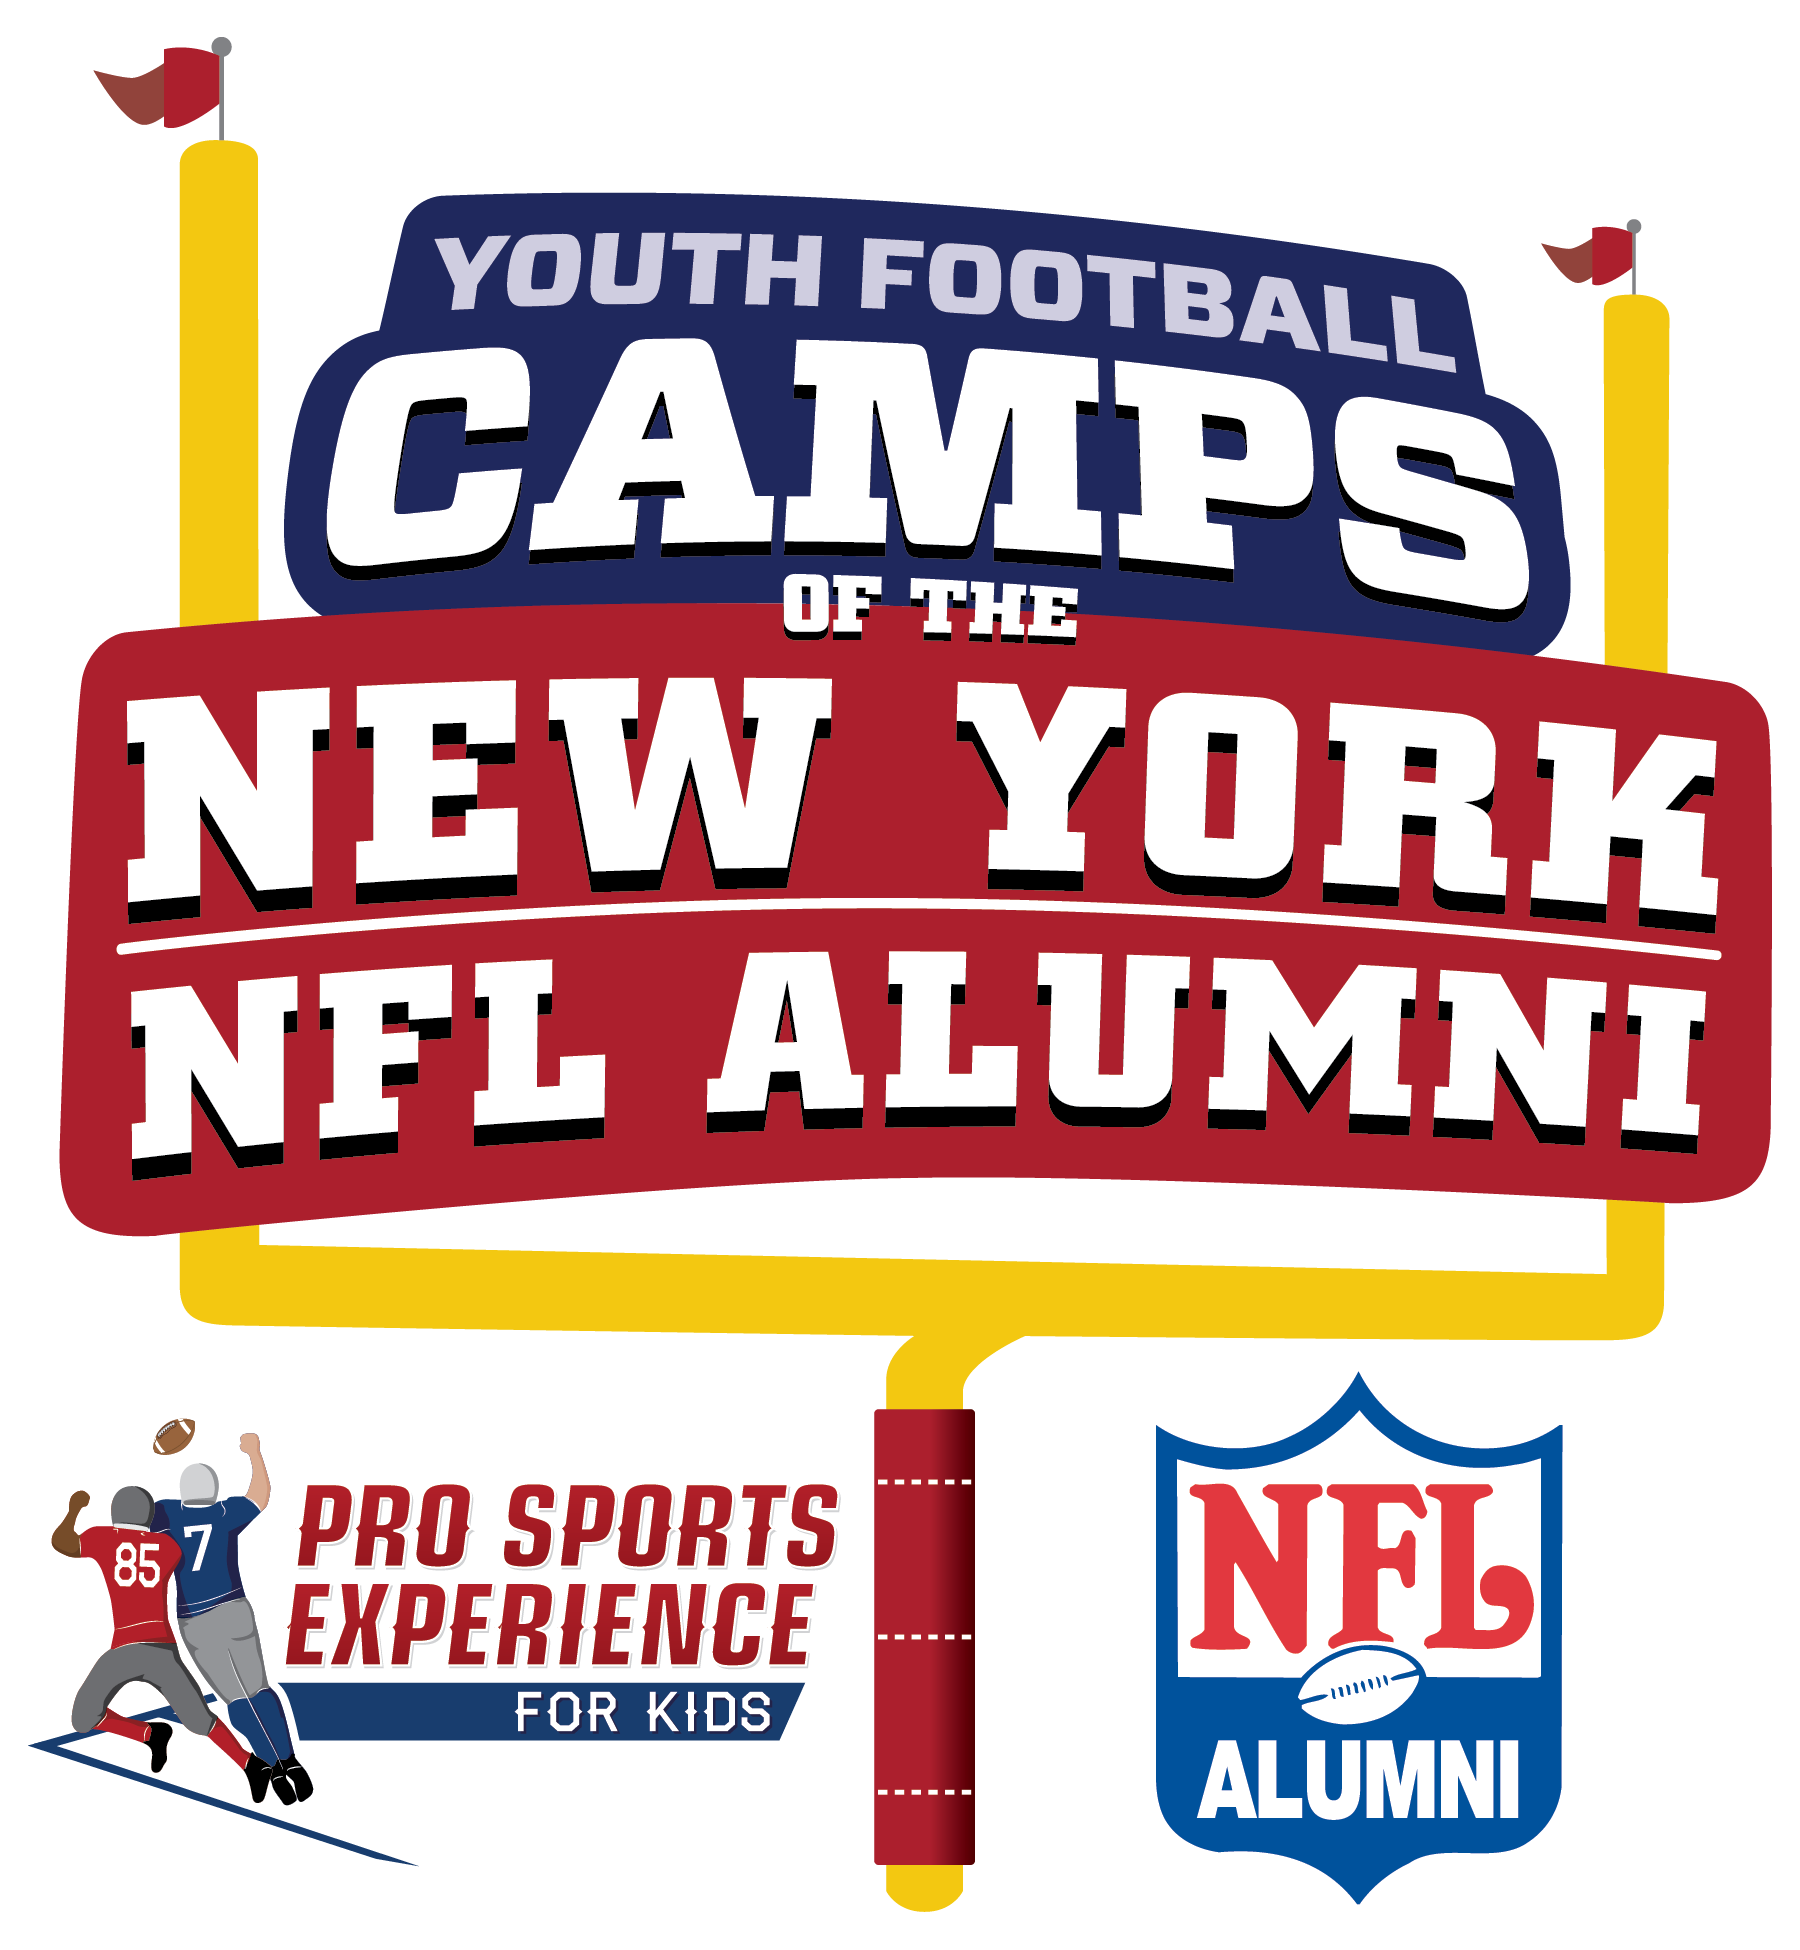 New York NFL Alumni Hero Youth Football Camps - Middletown